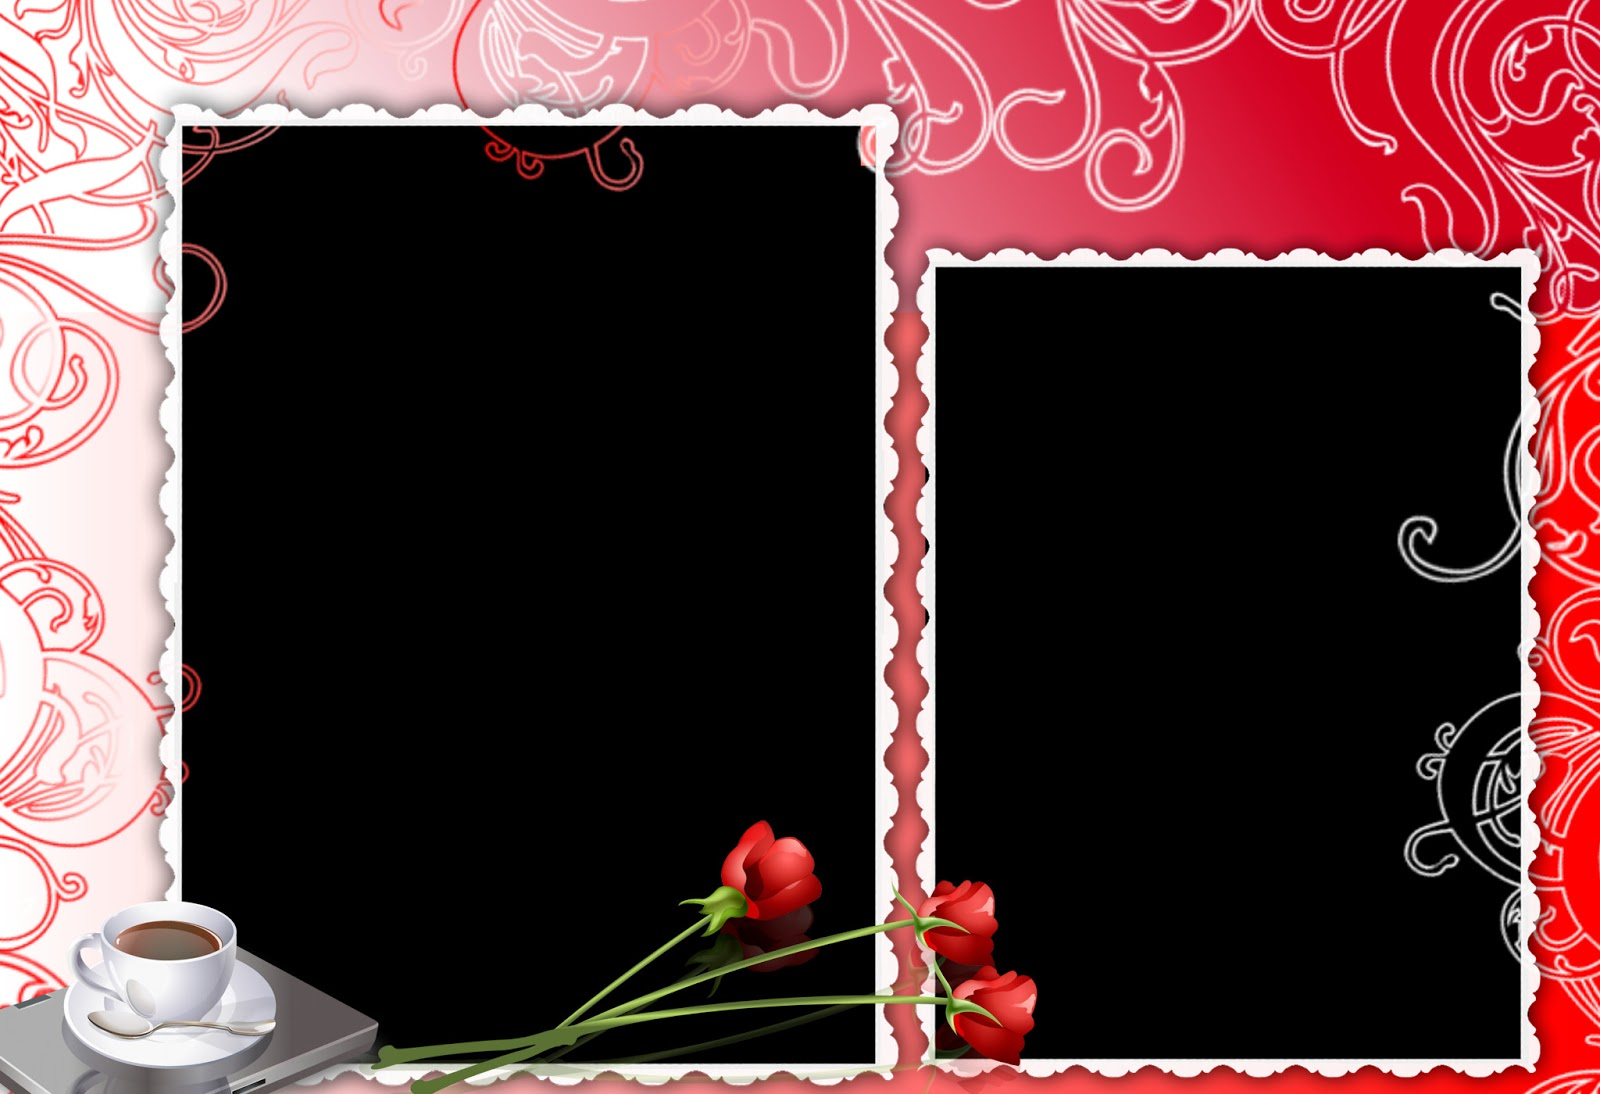 hd photo frames images   top 10 wallpapers